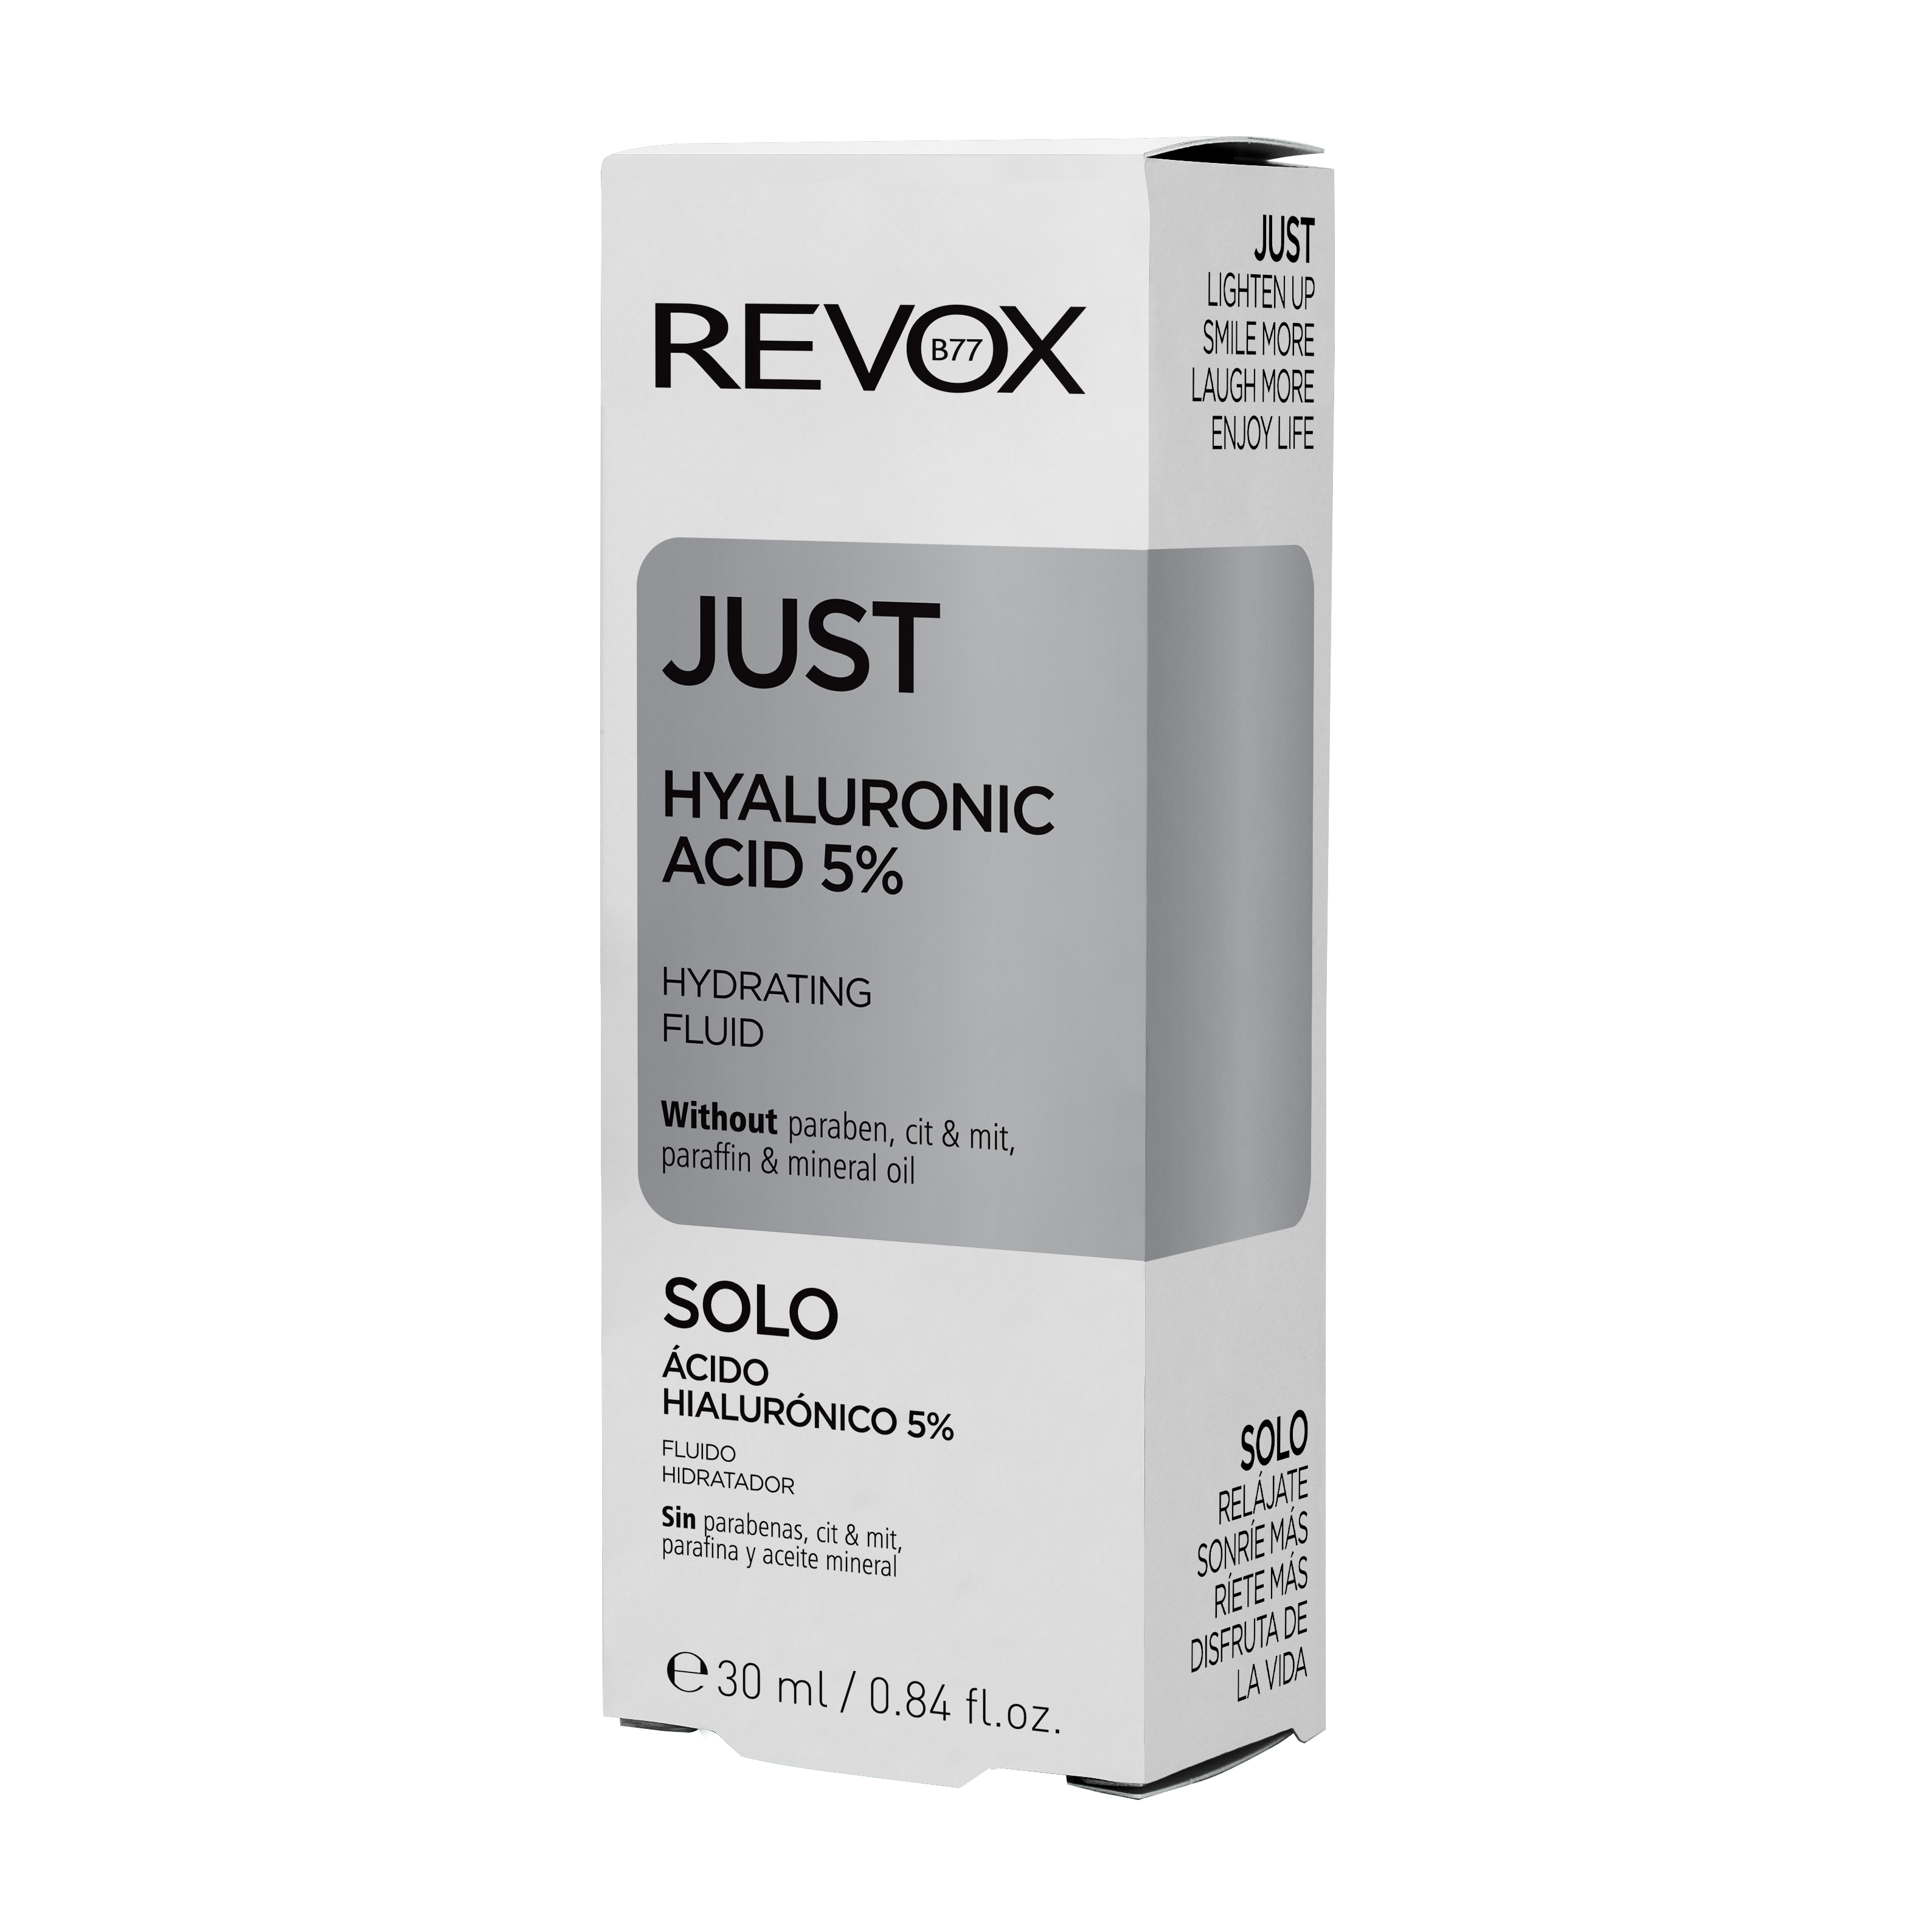 Acid hialuronic Just Hyaluronic Acid 5%, 30 ml, Revox